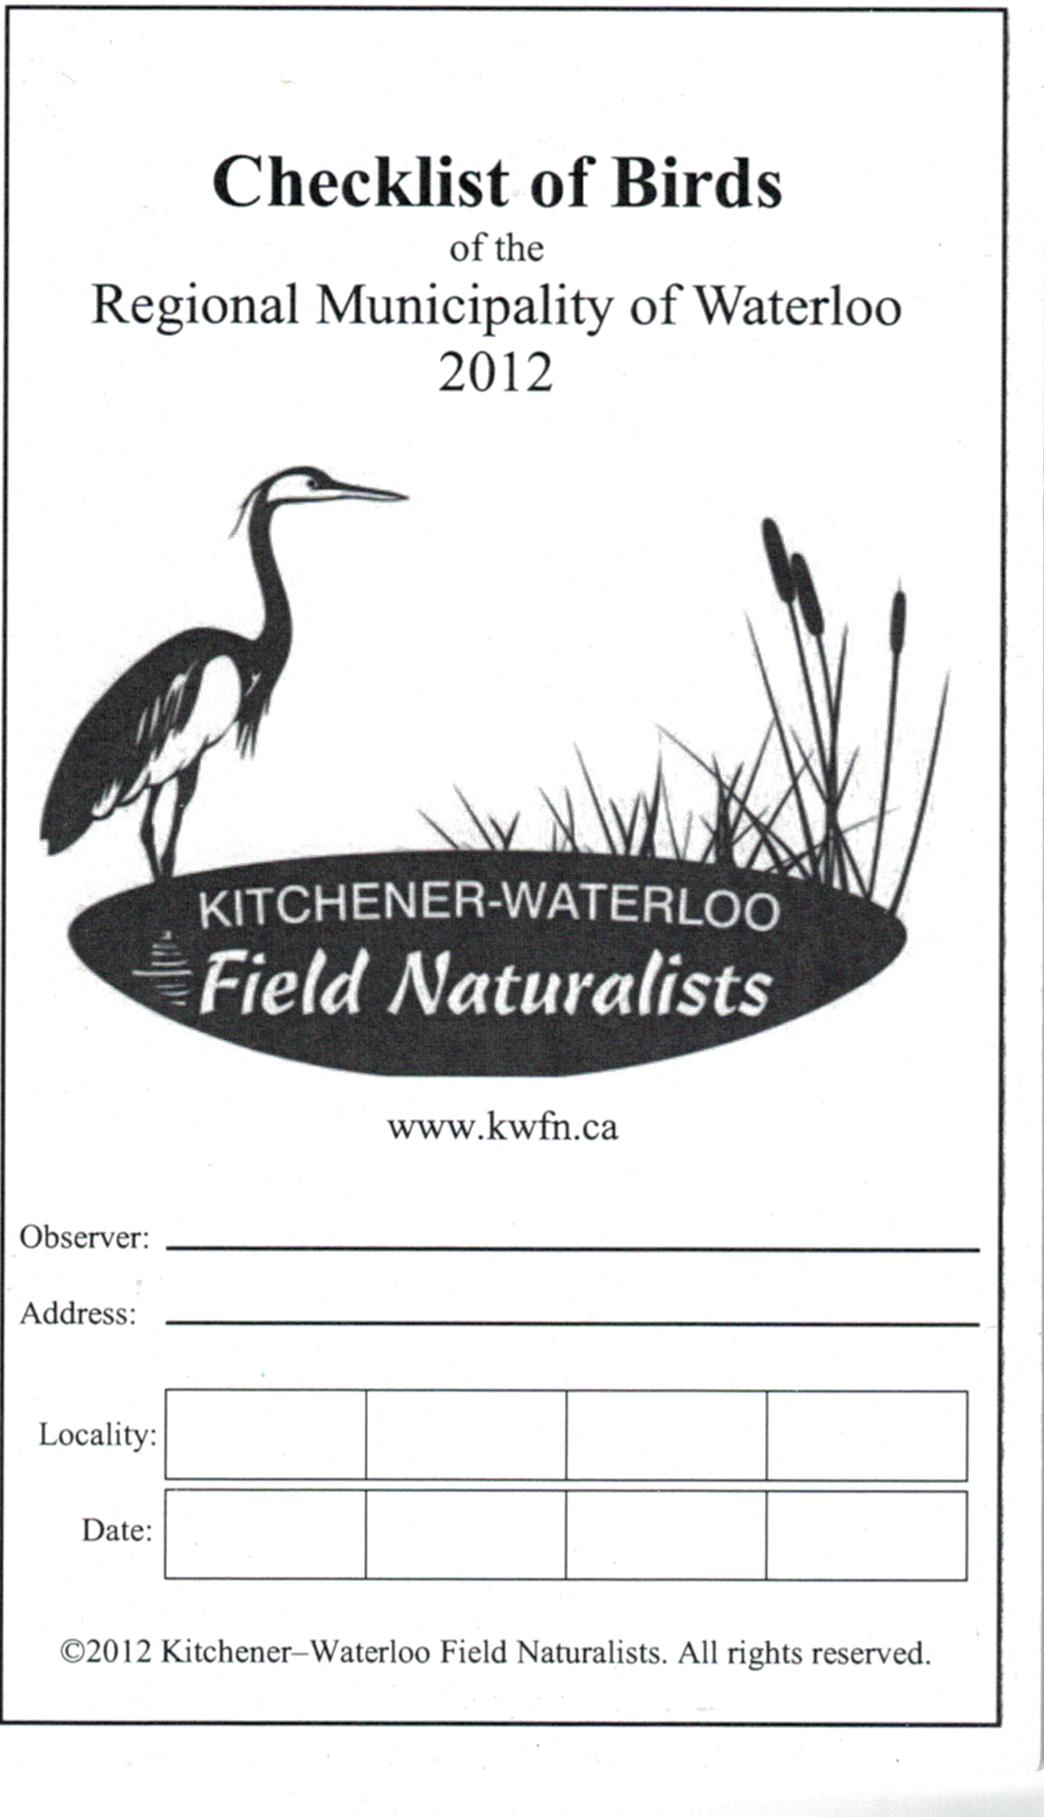 Checklist of Birds of the Regional Municipality of Waterloo 2012